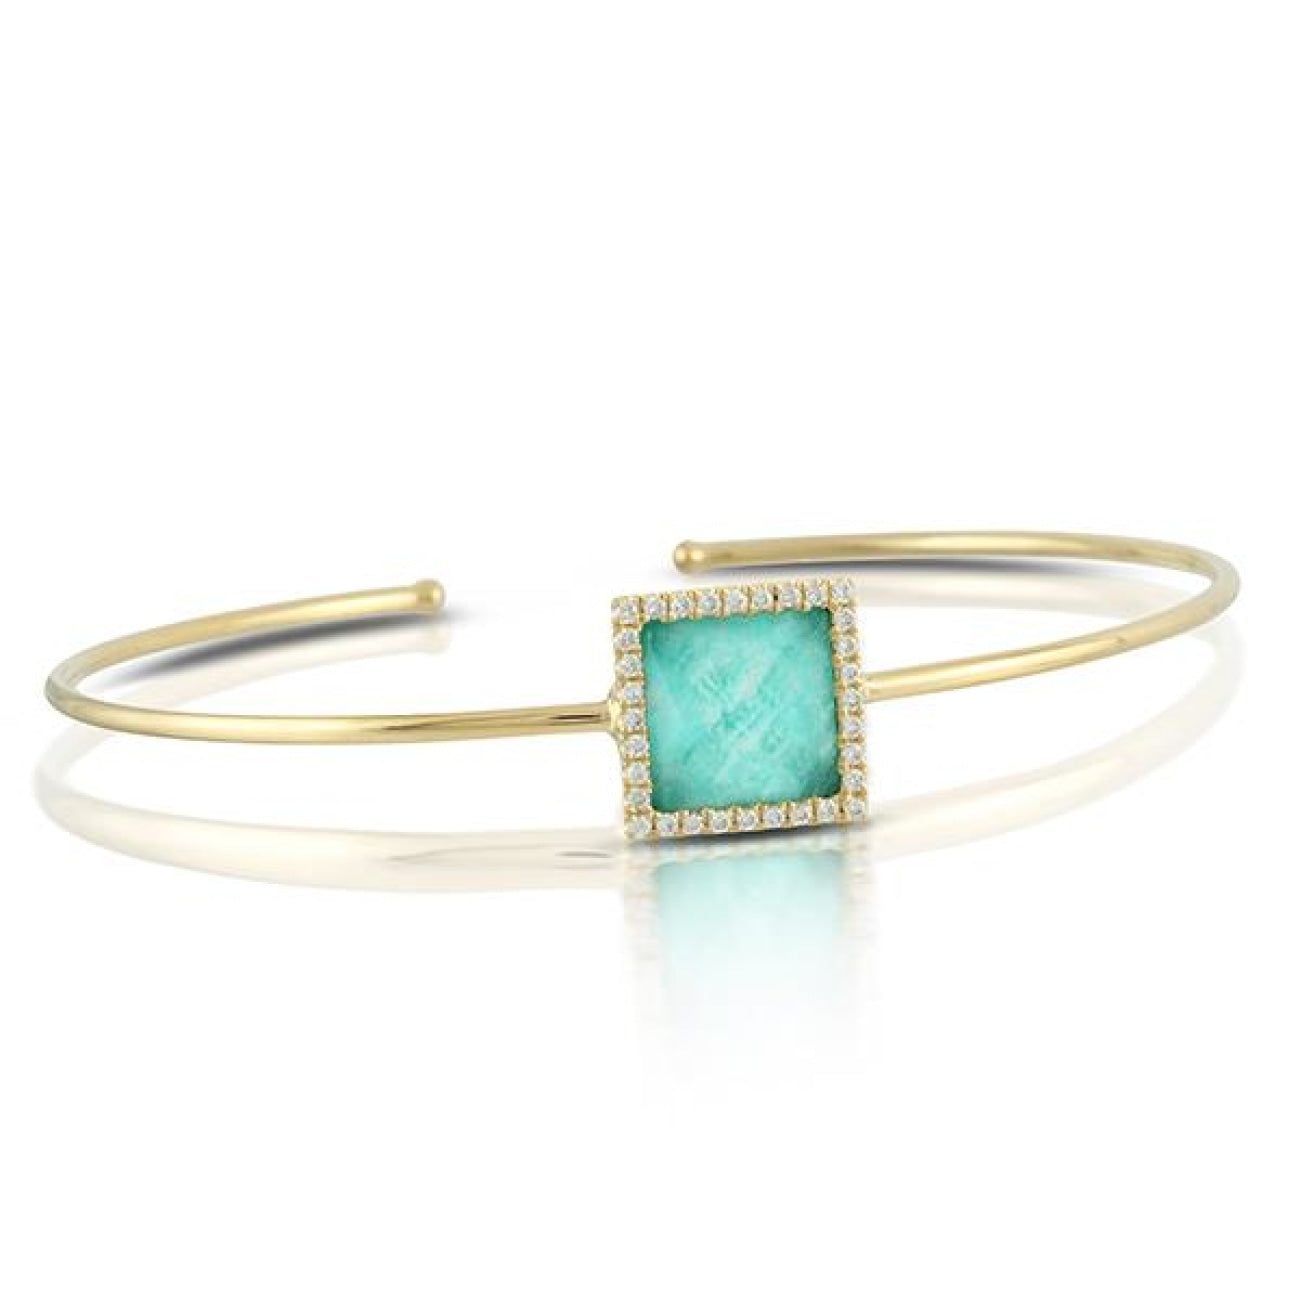 Doves Jewelry - Amazon Breeze Collection Bangle Bracelet | Manfredi Jewels